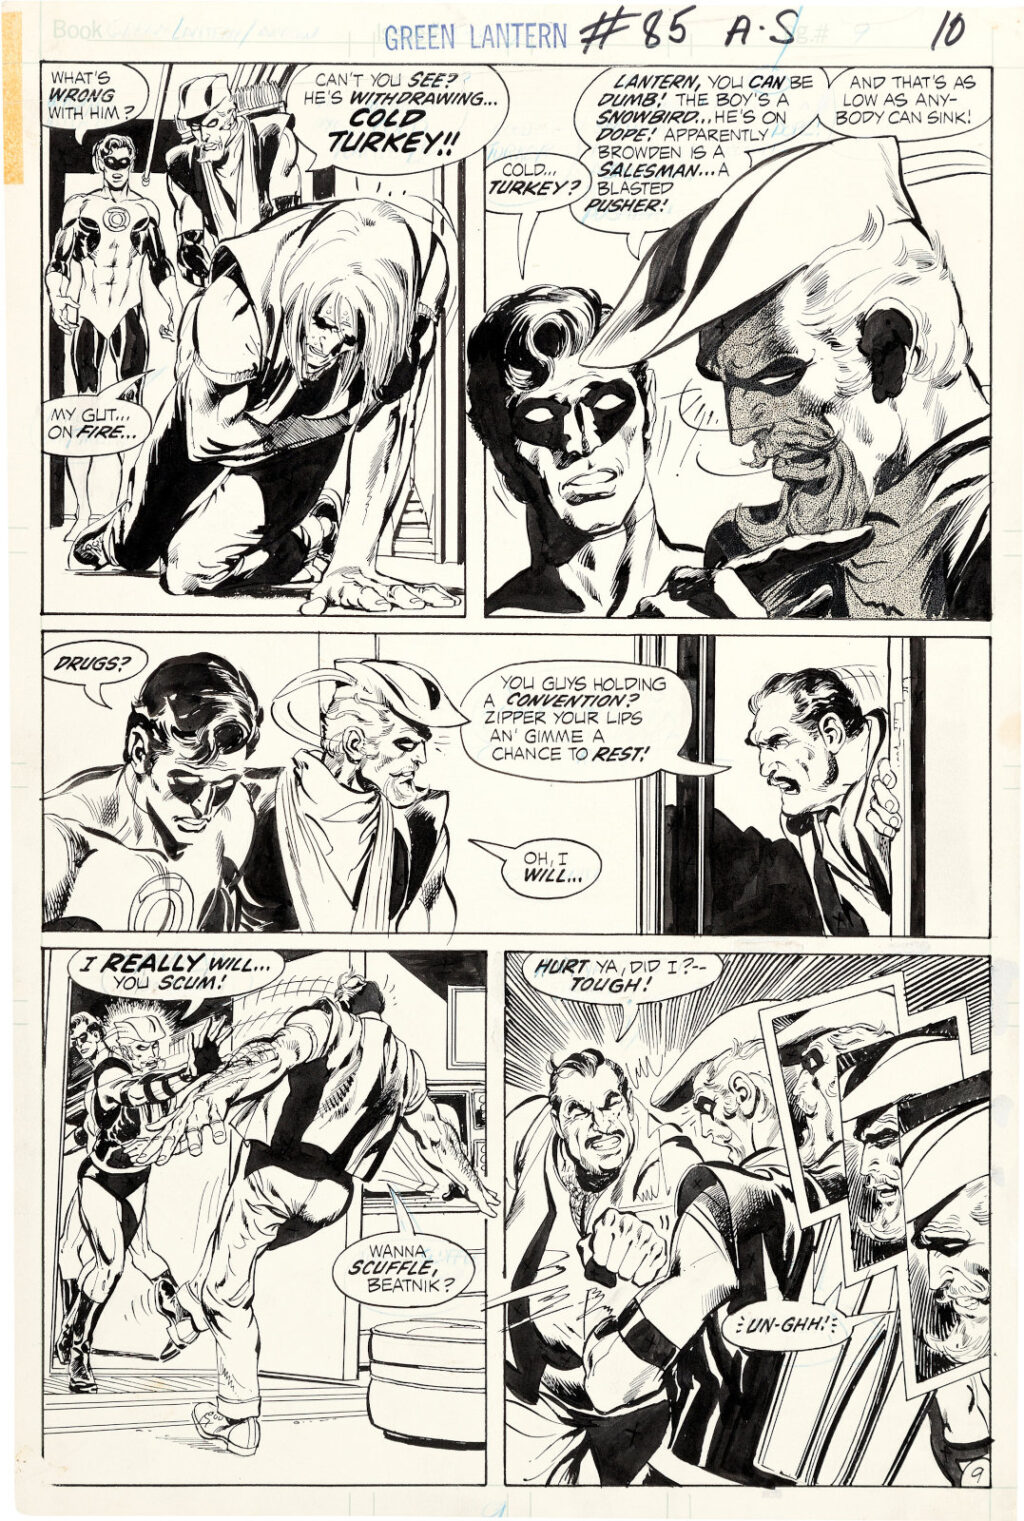 Green Lantern issue 85 page 9 by Neal Adams